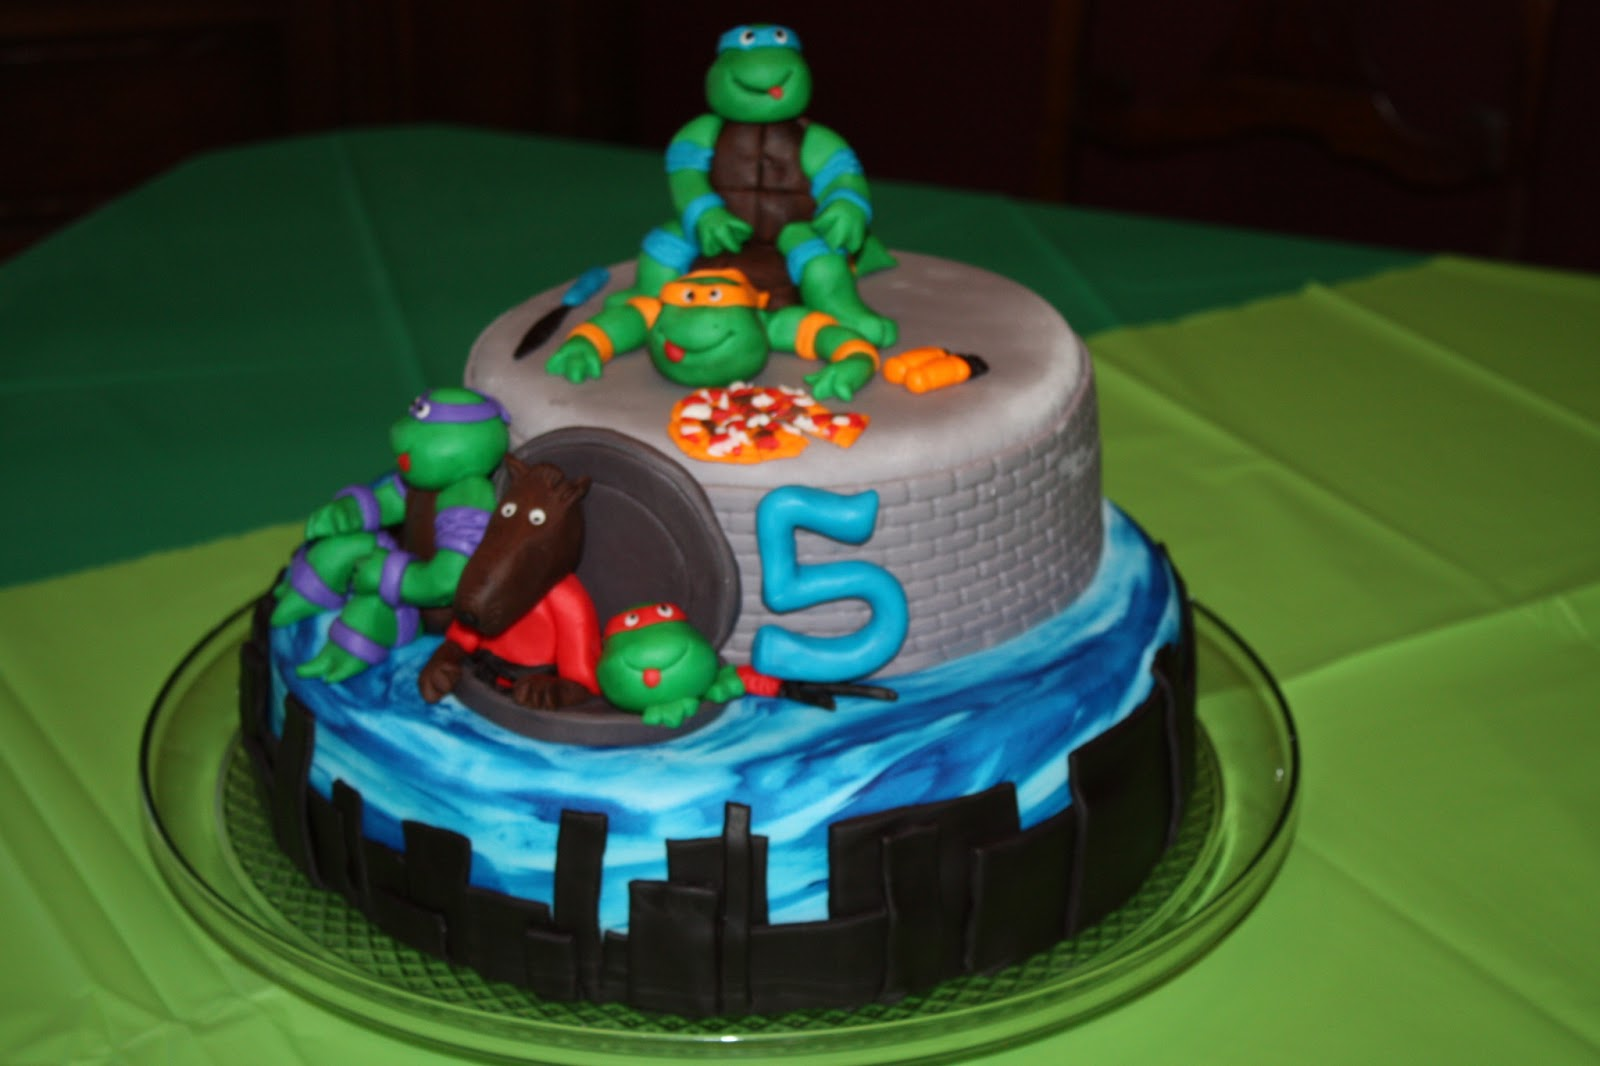 Sweet Melissas Cakery: Teenage Mutant Ninja Turtles Birthday Cake